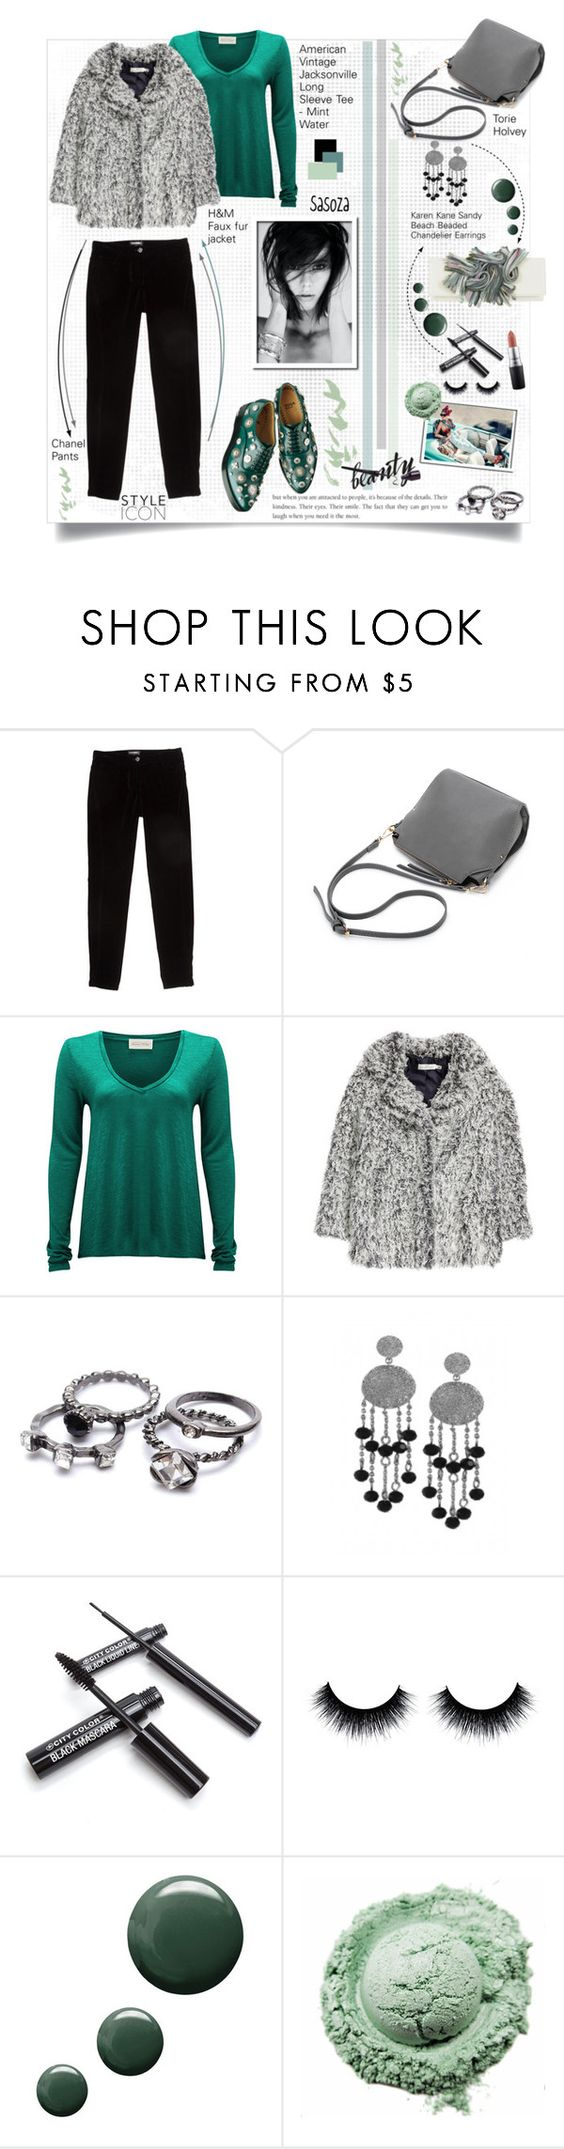 """""""outfit of the day by Sasoza"""" by sasooza ❤ liked on Polyvore featuring Chanel, American Vintage, H&M, Karen Kane, Topshop and MAC Cosmetics"""